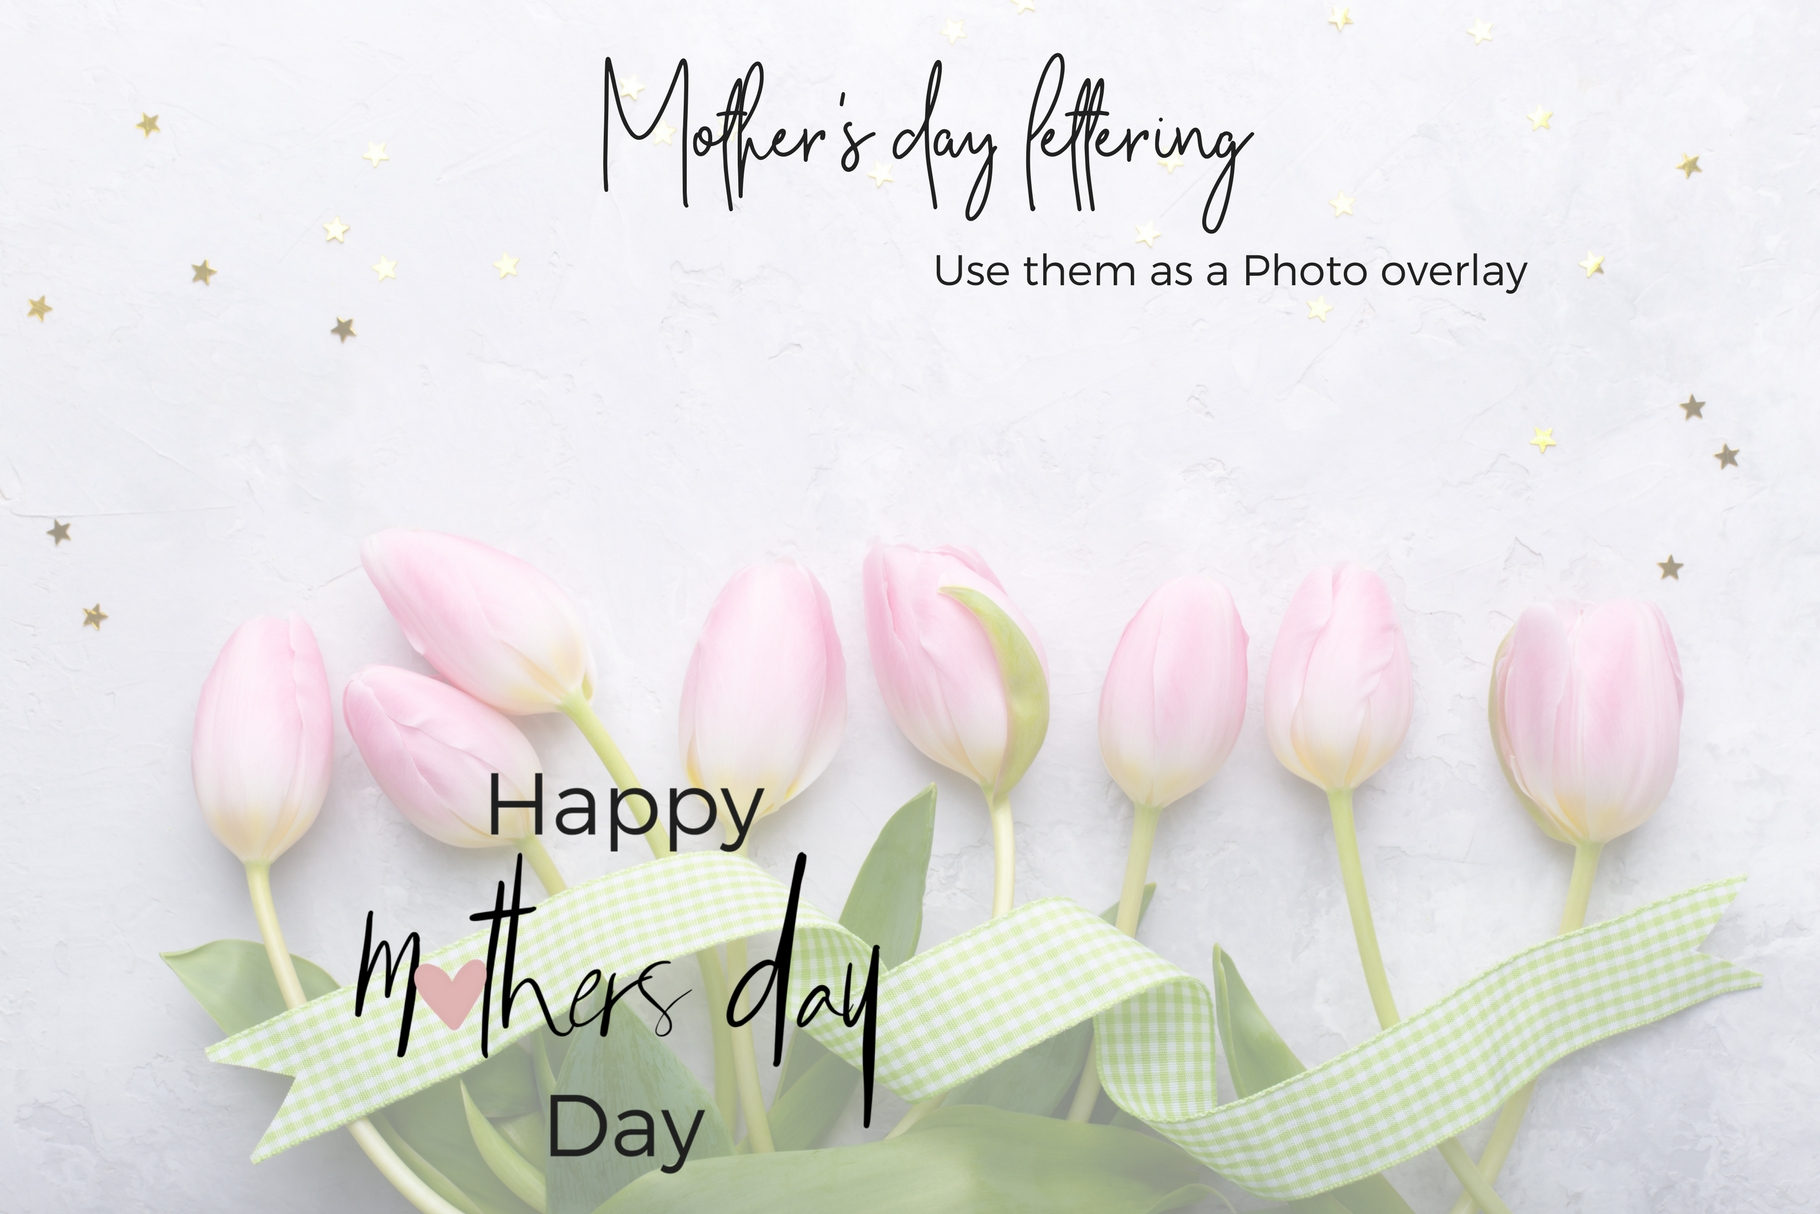 Mother's Day Lettering Graphic Web Elements By Creative Stash - Image 3